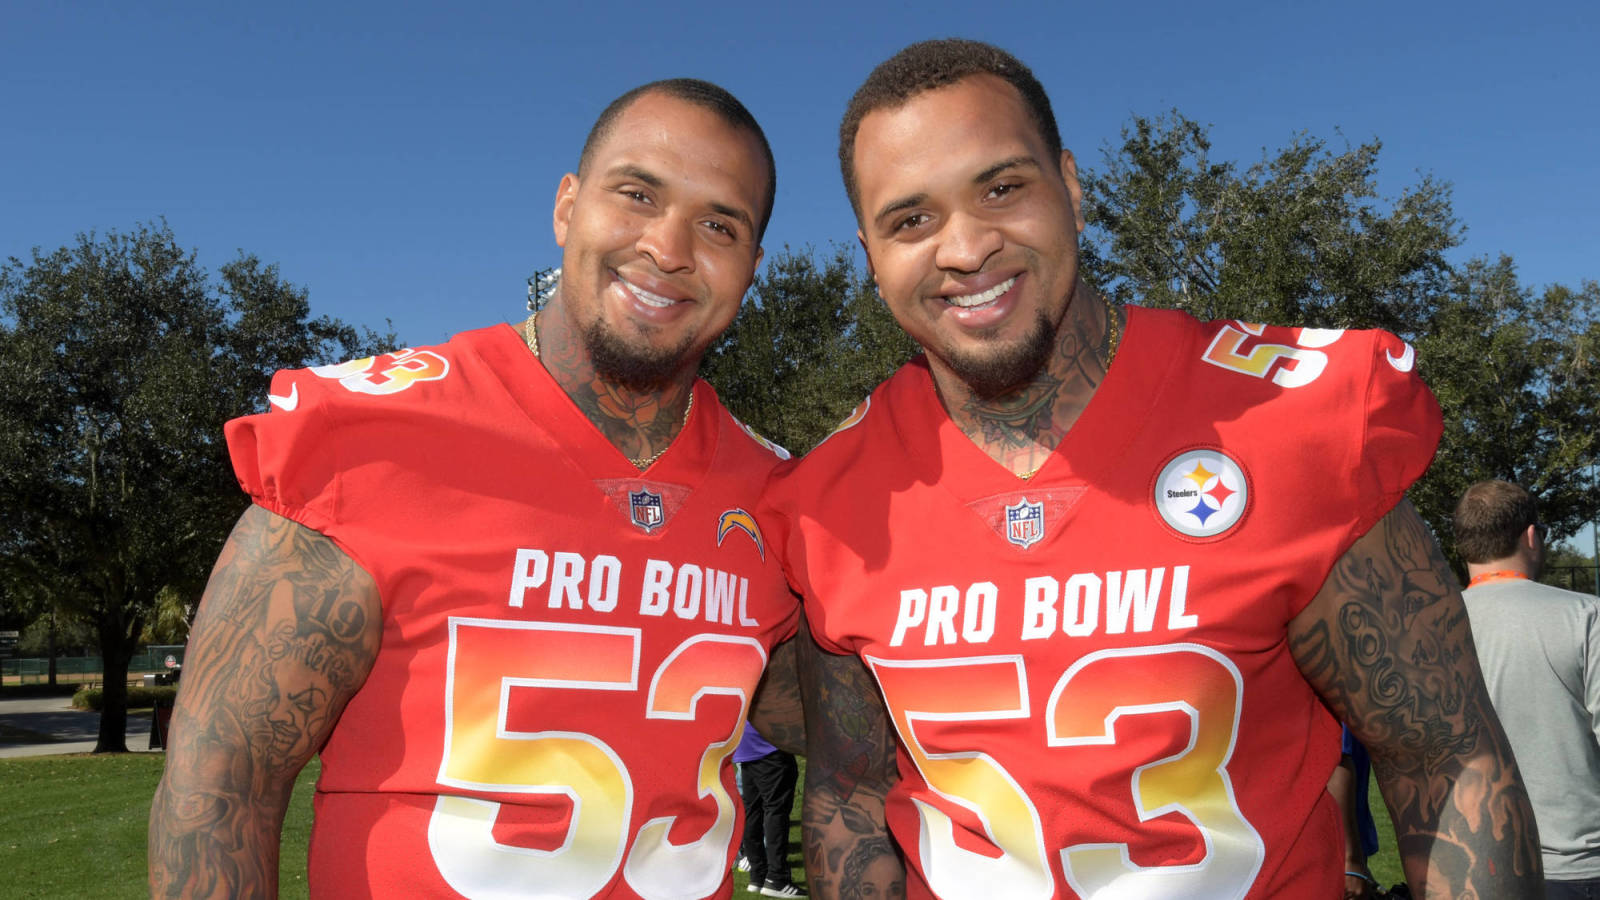 Twins Maurkice and Mike Pouncey Announce Retirement from NFL